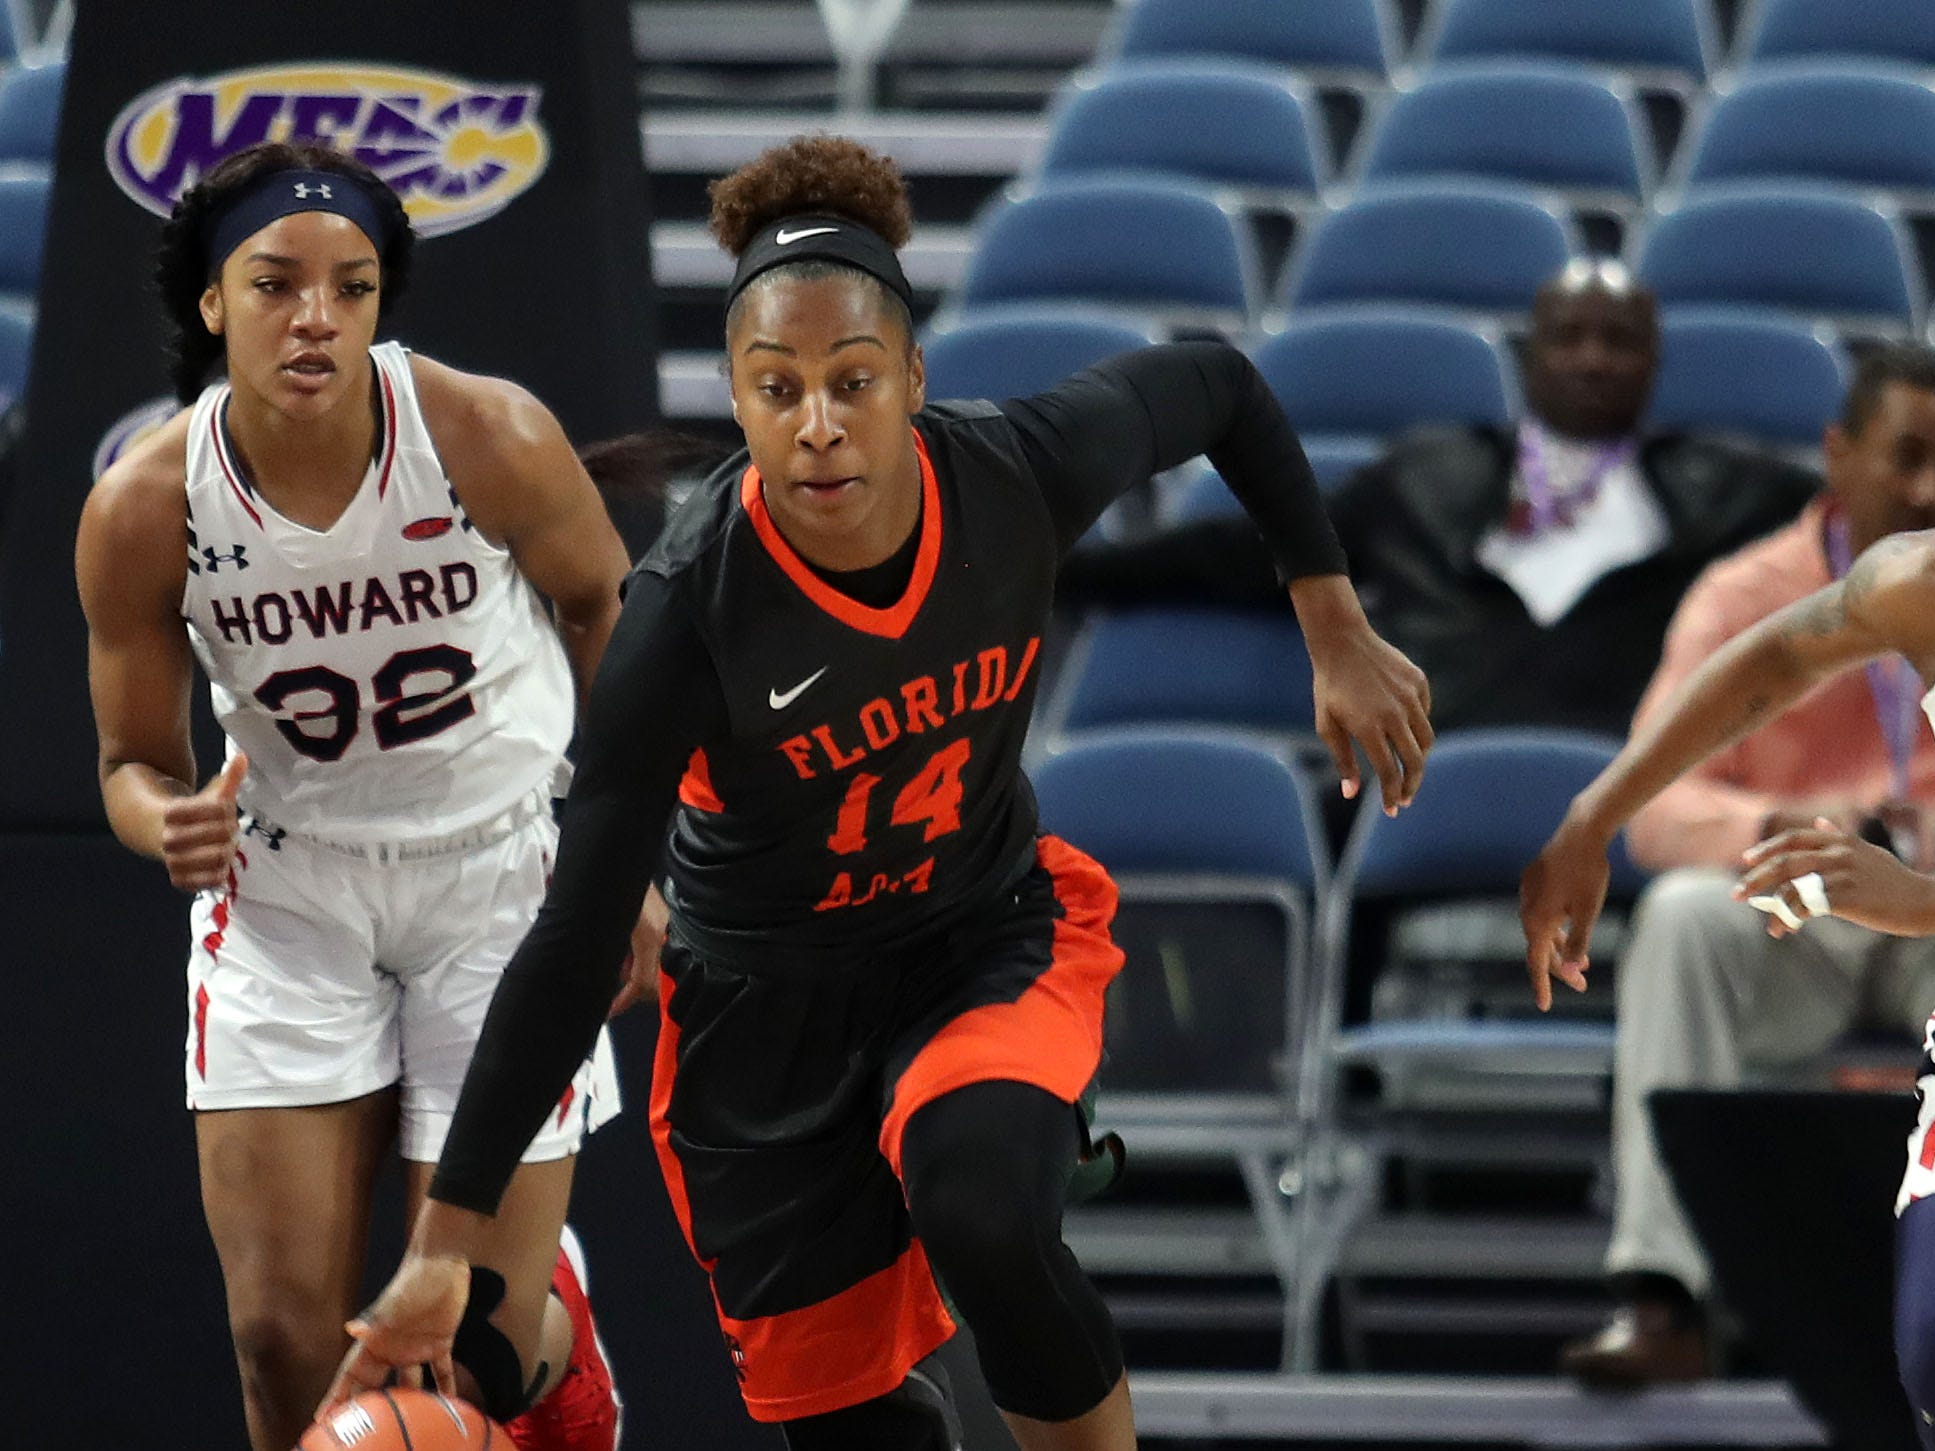 FAMU Tyra James dribbles the ball after collecting a rebound in the MEAC tournament on Monday, March 11, 2019.